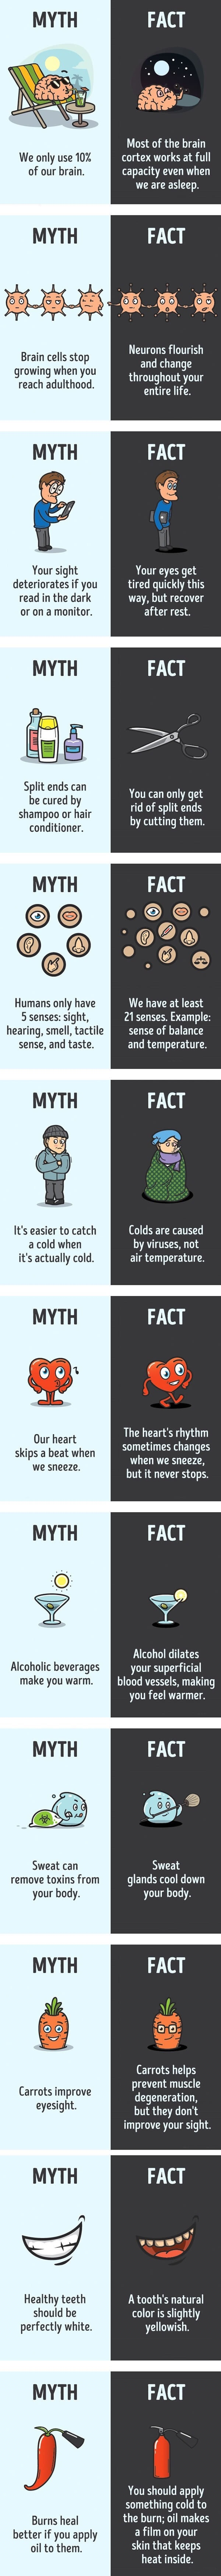 myths-facts-comics